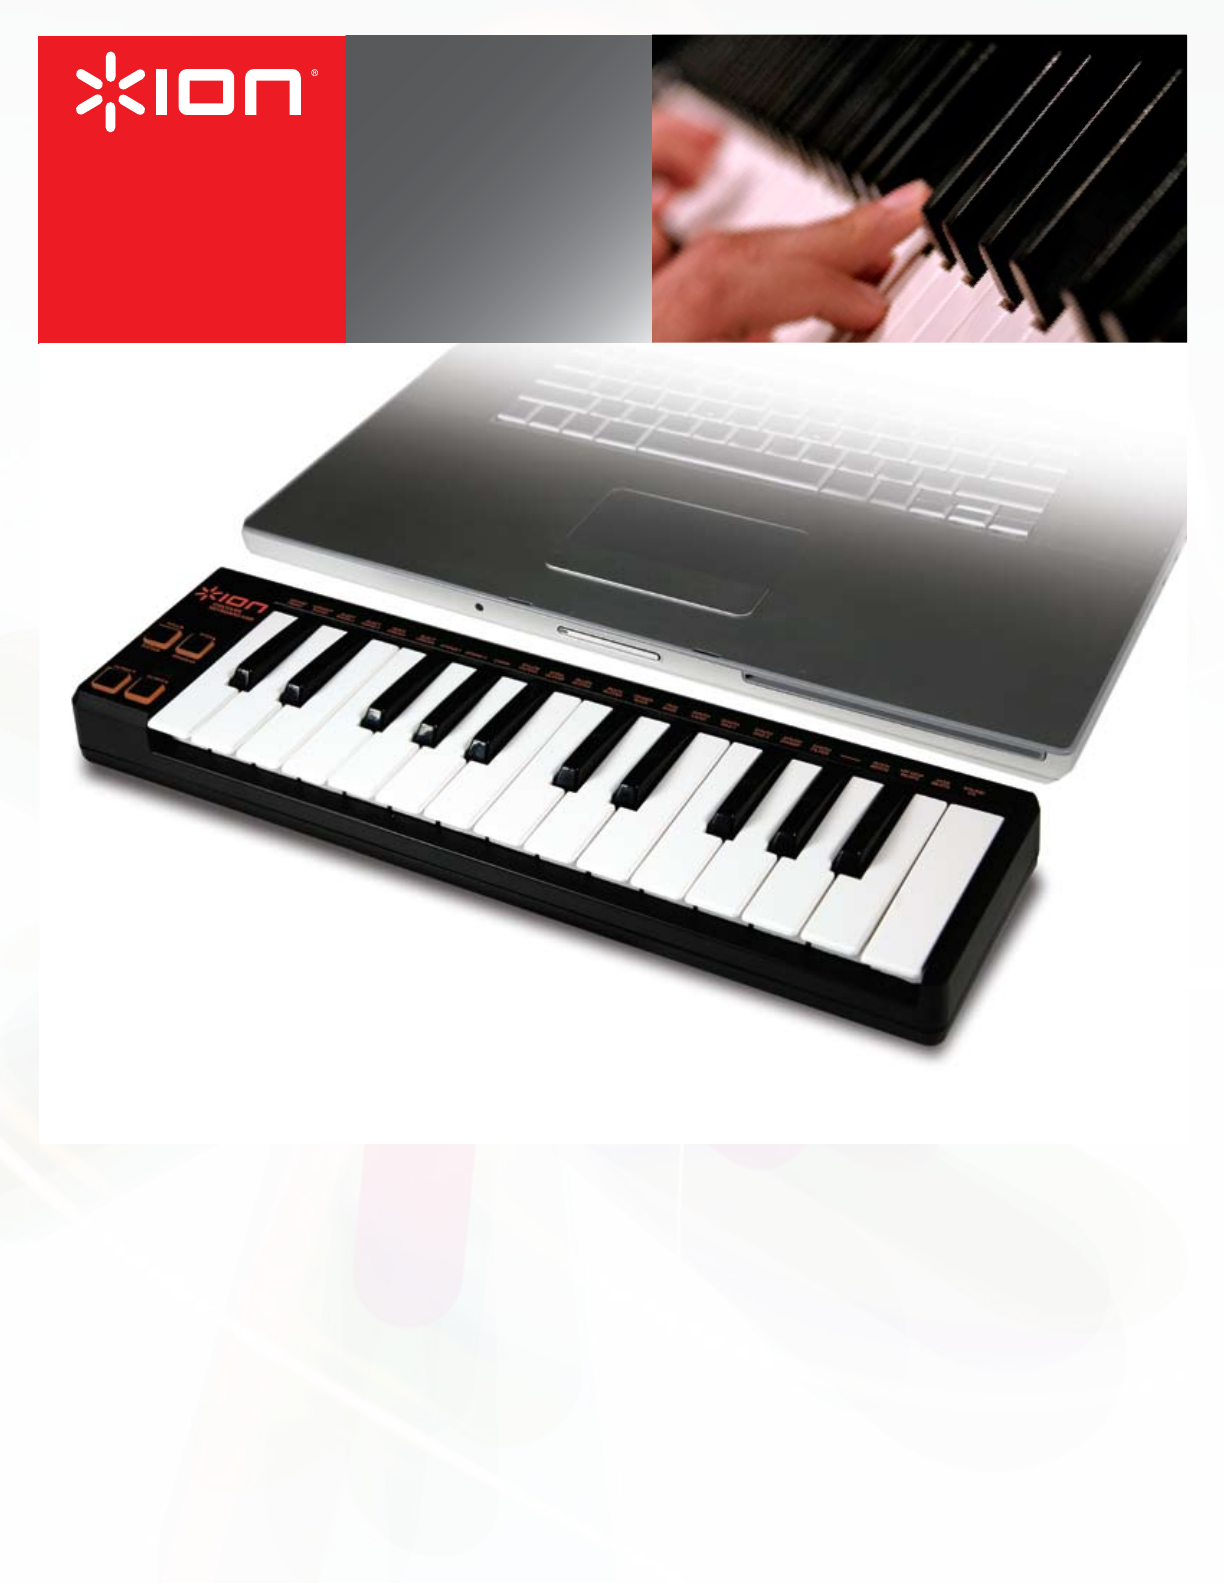 ion electronic keyboard discover keyboard usb user guide rh music manualsonline com Types of Electric Keyboards First Electric Keyboard